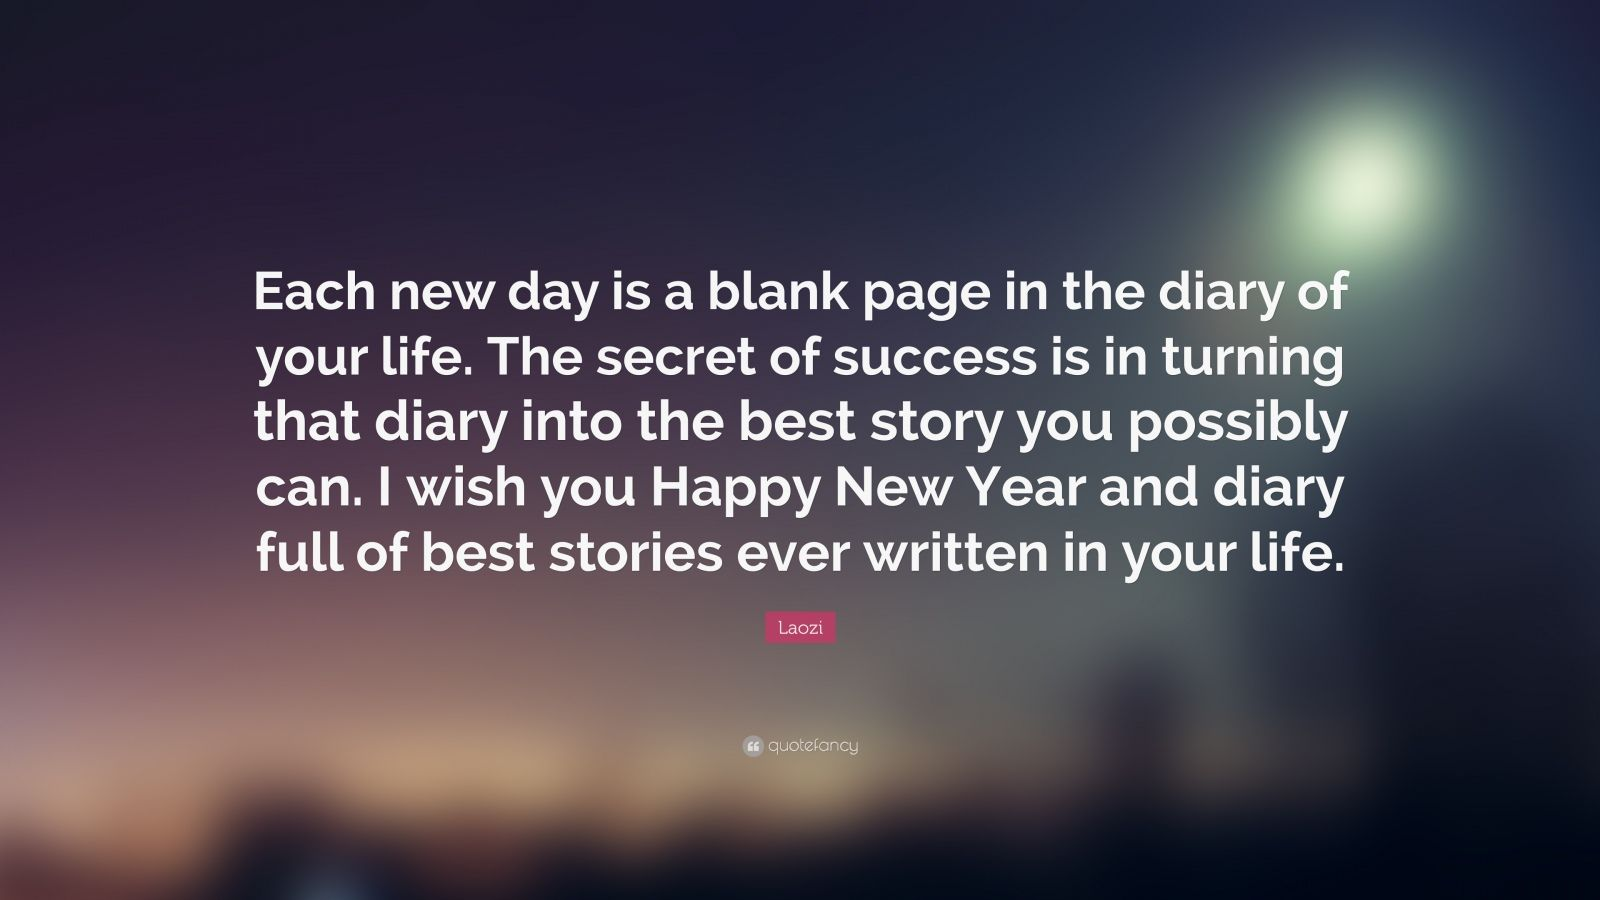 Inspiration Quote Wallpapers Hd Laozi Quote Each New Day Is A Blank Page In The Diary Of